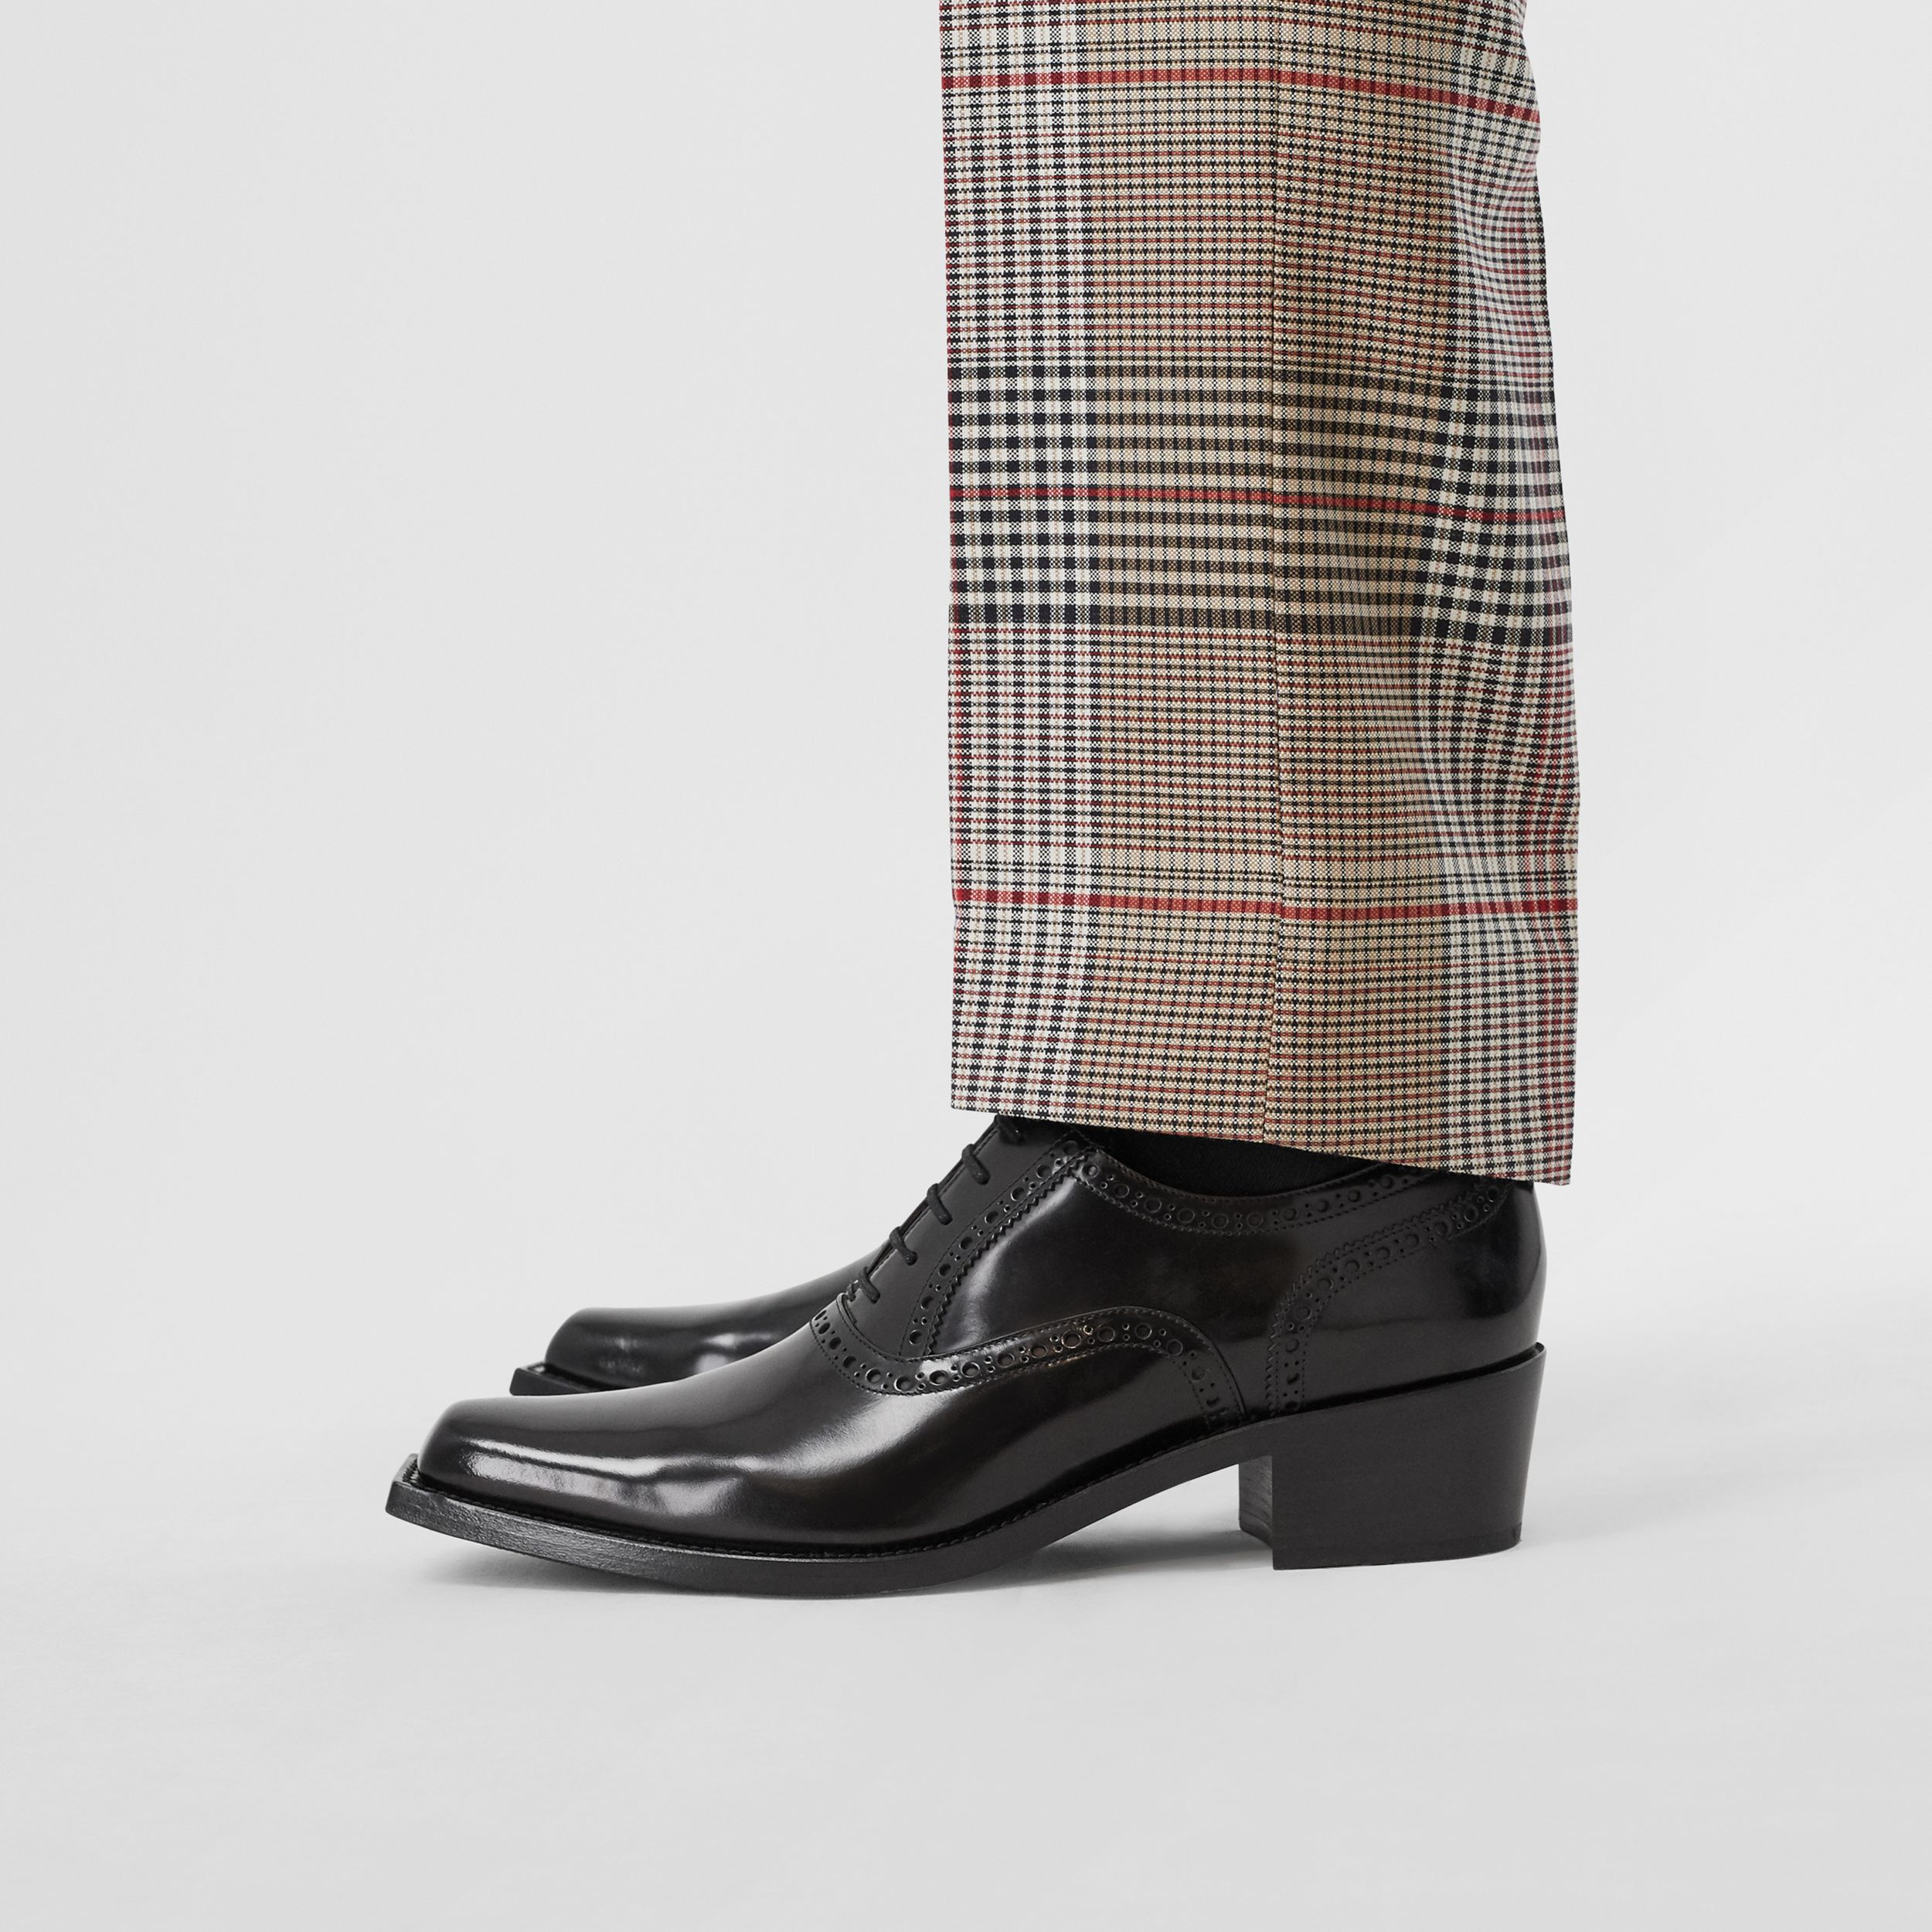 D-ring Detail Leather Heeled Oxford Brogues in Black | Burberry Singapore - 3